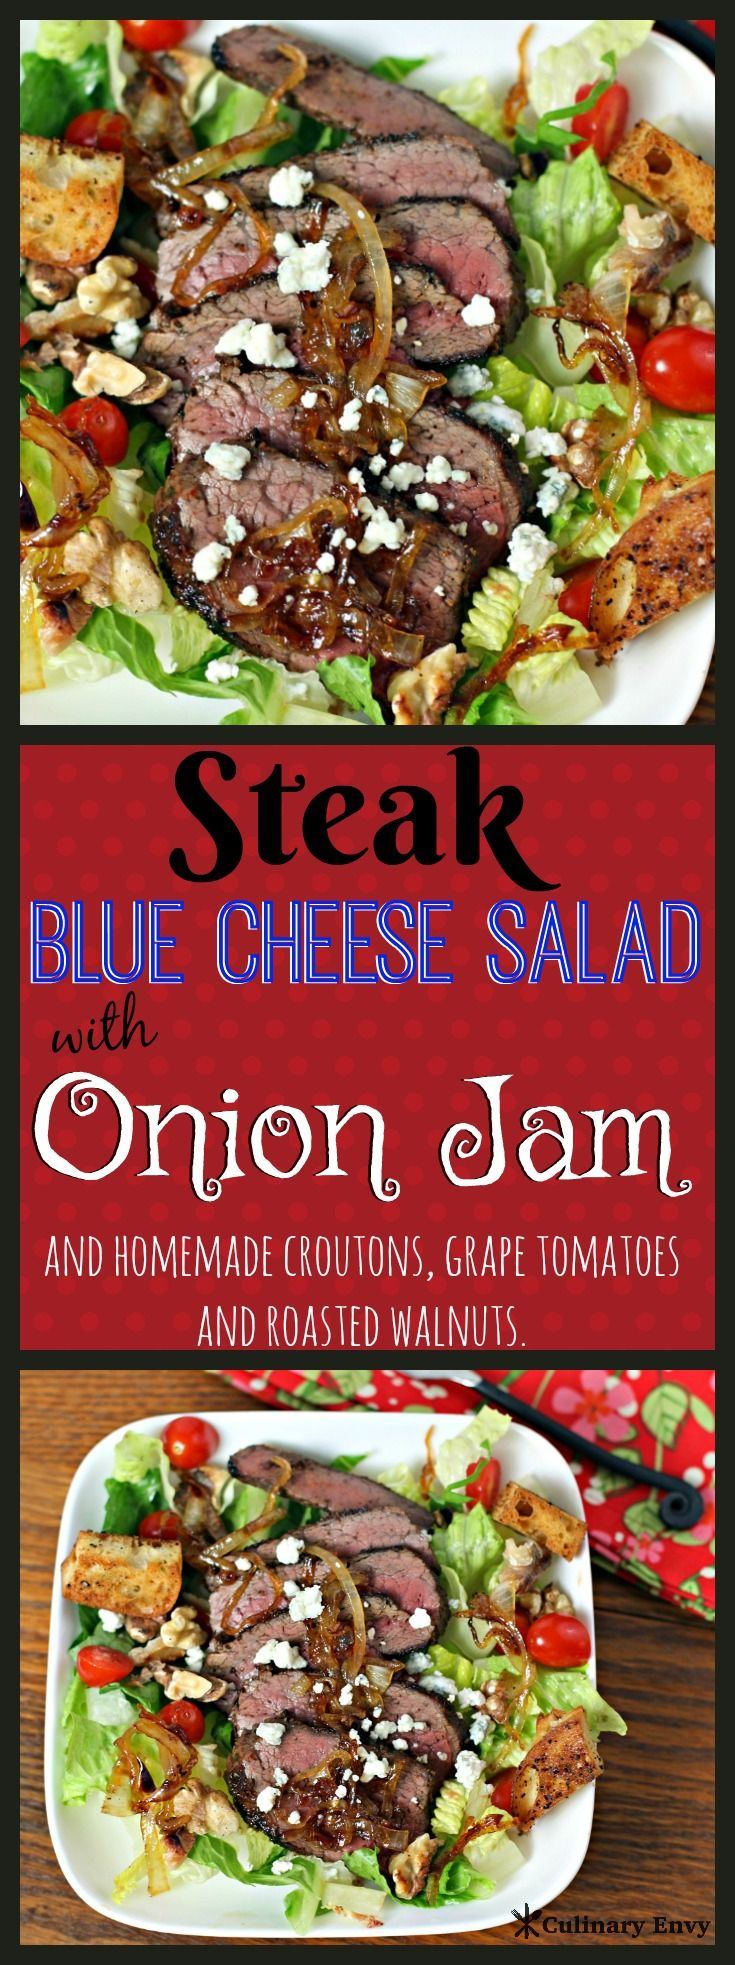 This Steak Blue Cheese Salad with Onion Jam is low calorie, low carb and ready in 30 minutes! The perfect main course any time of year! Click to read more!